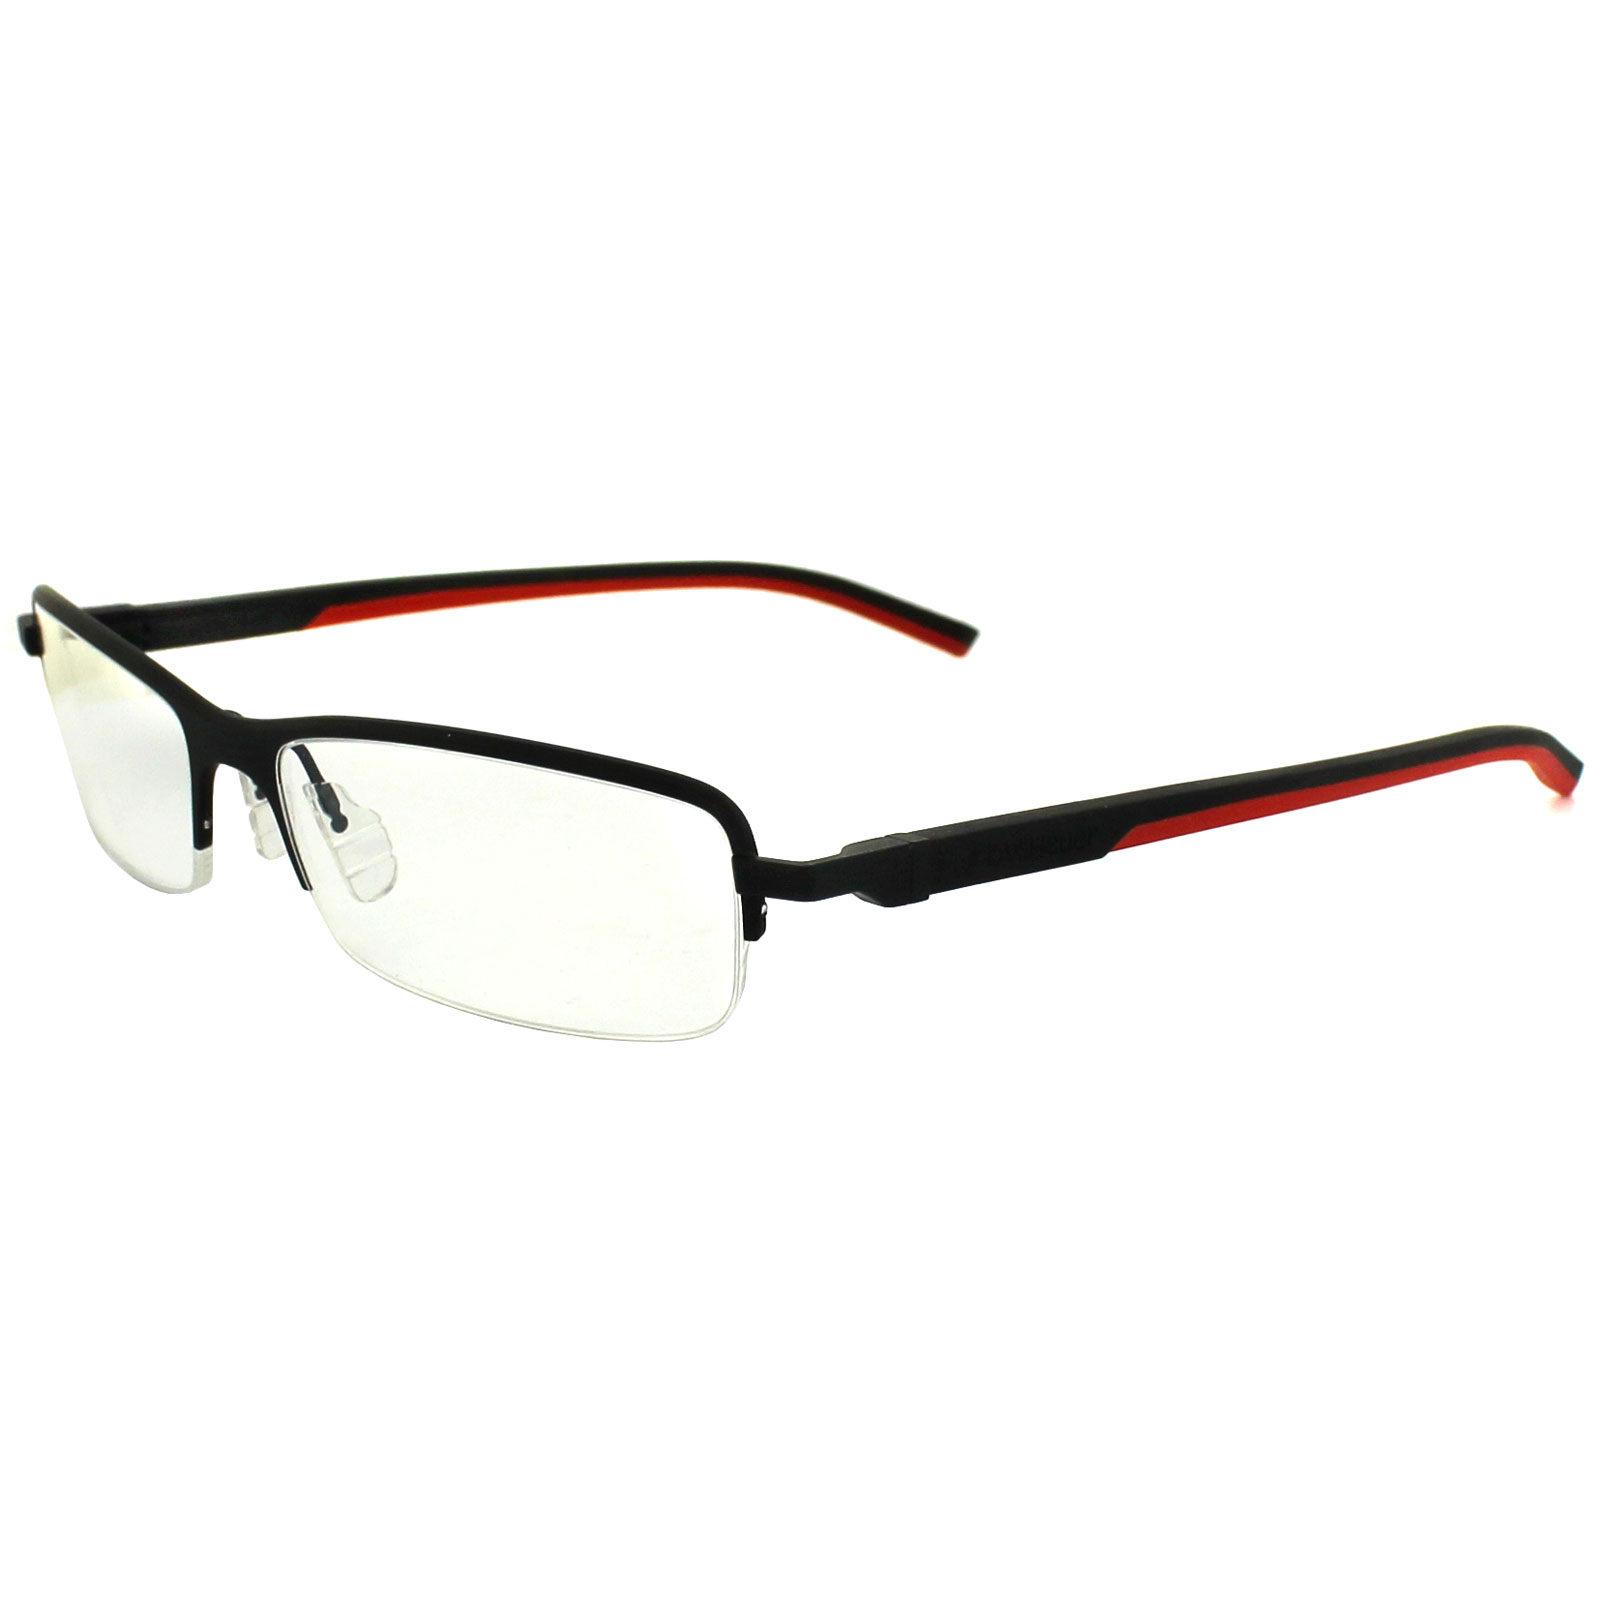 Eyeglasses Frames Tag Heuer : Cheap Tag Heuer Glasses Frames Automatic 0824 012 Matt ...